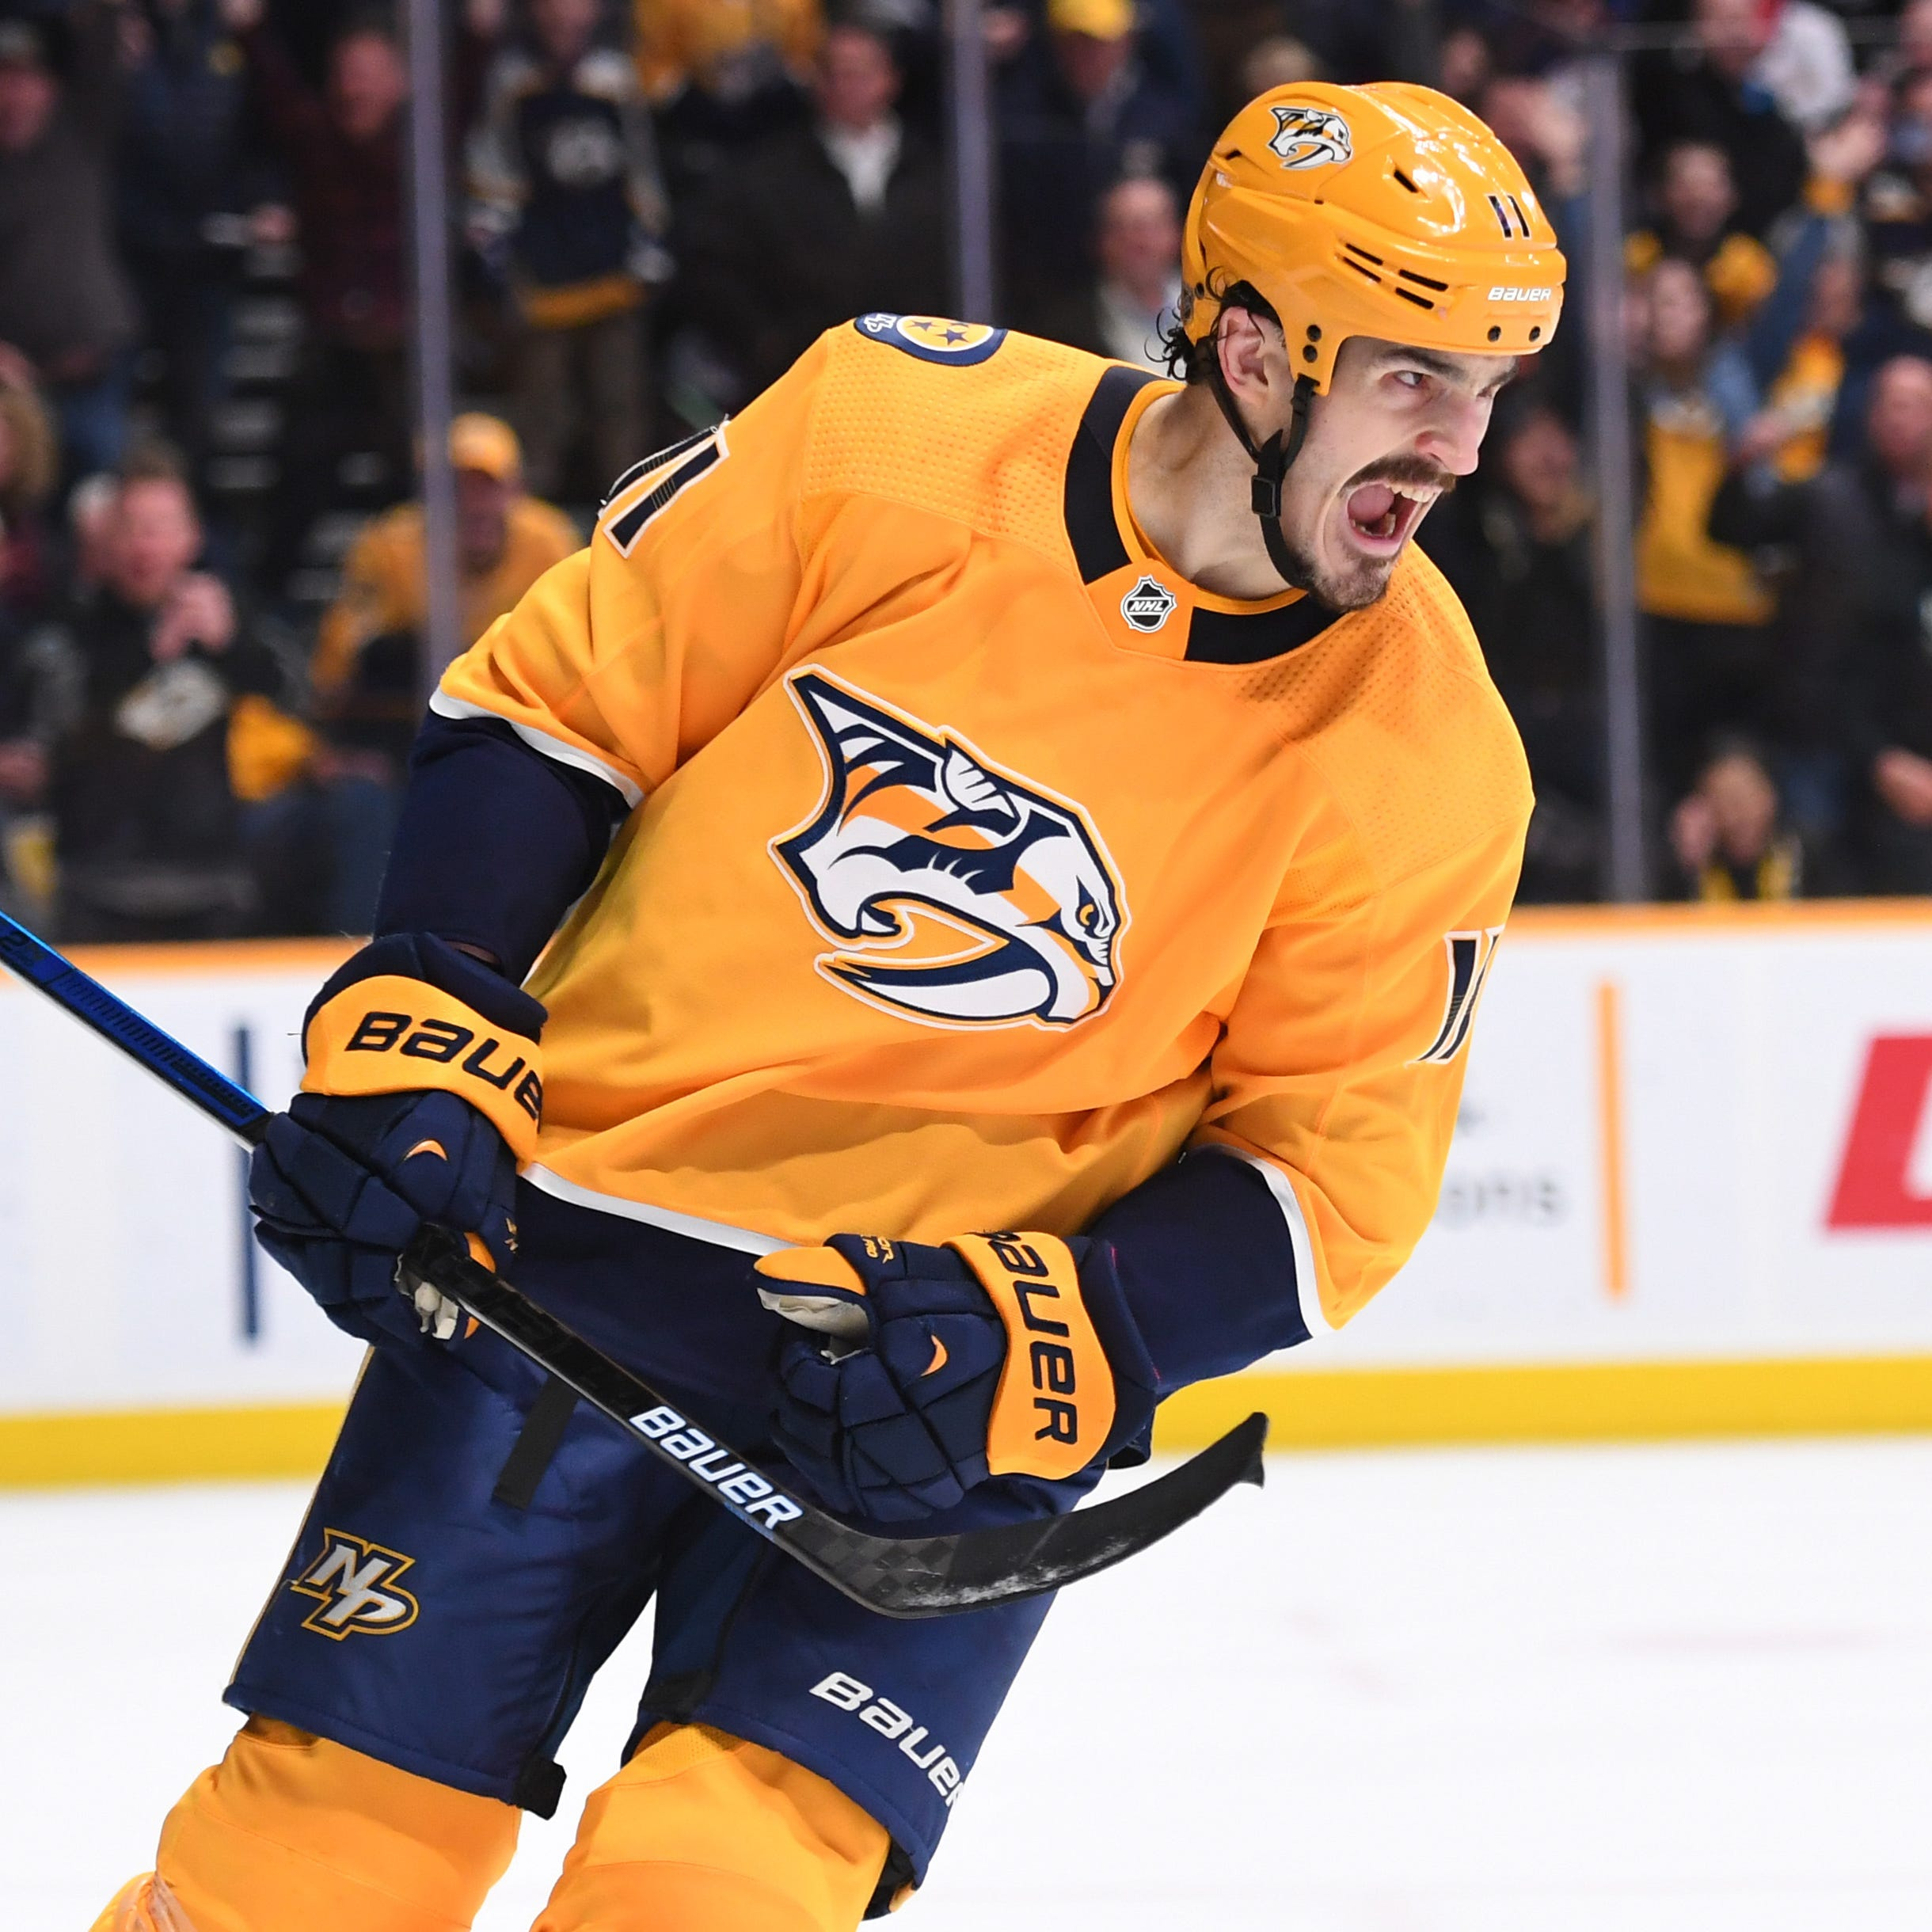 Predators mailbag: Who will stay after the season? Who will go? What's up with the PK Subban hate?